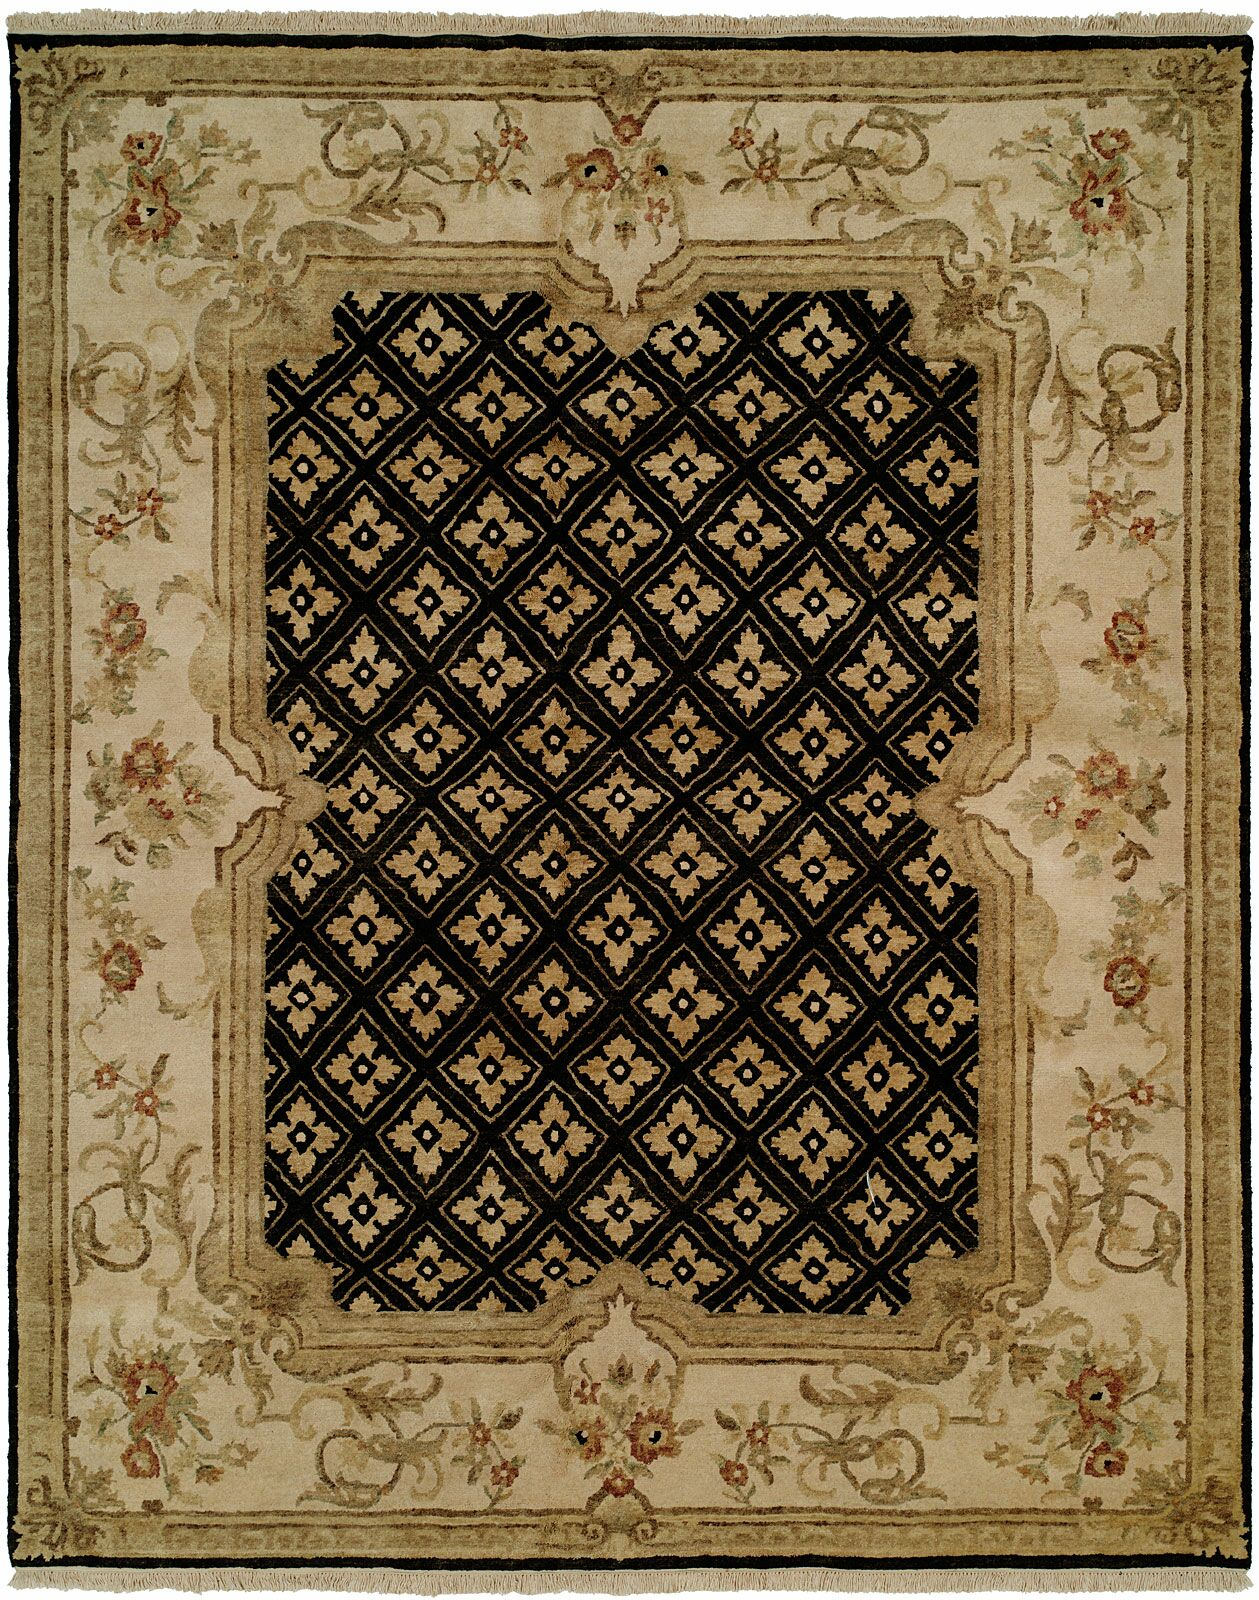 Marvin Hand Knotted Wool Black/Ivory Area Rug Rug Size: Rectangle 6' x 9'